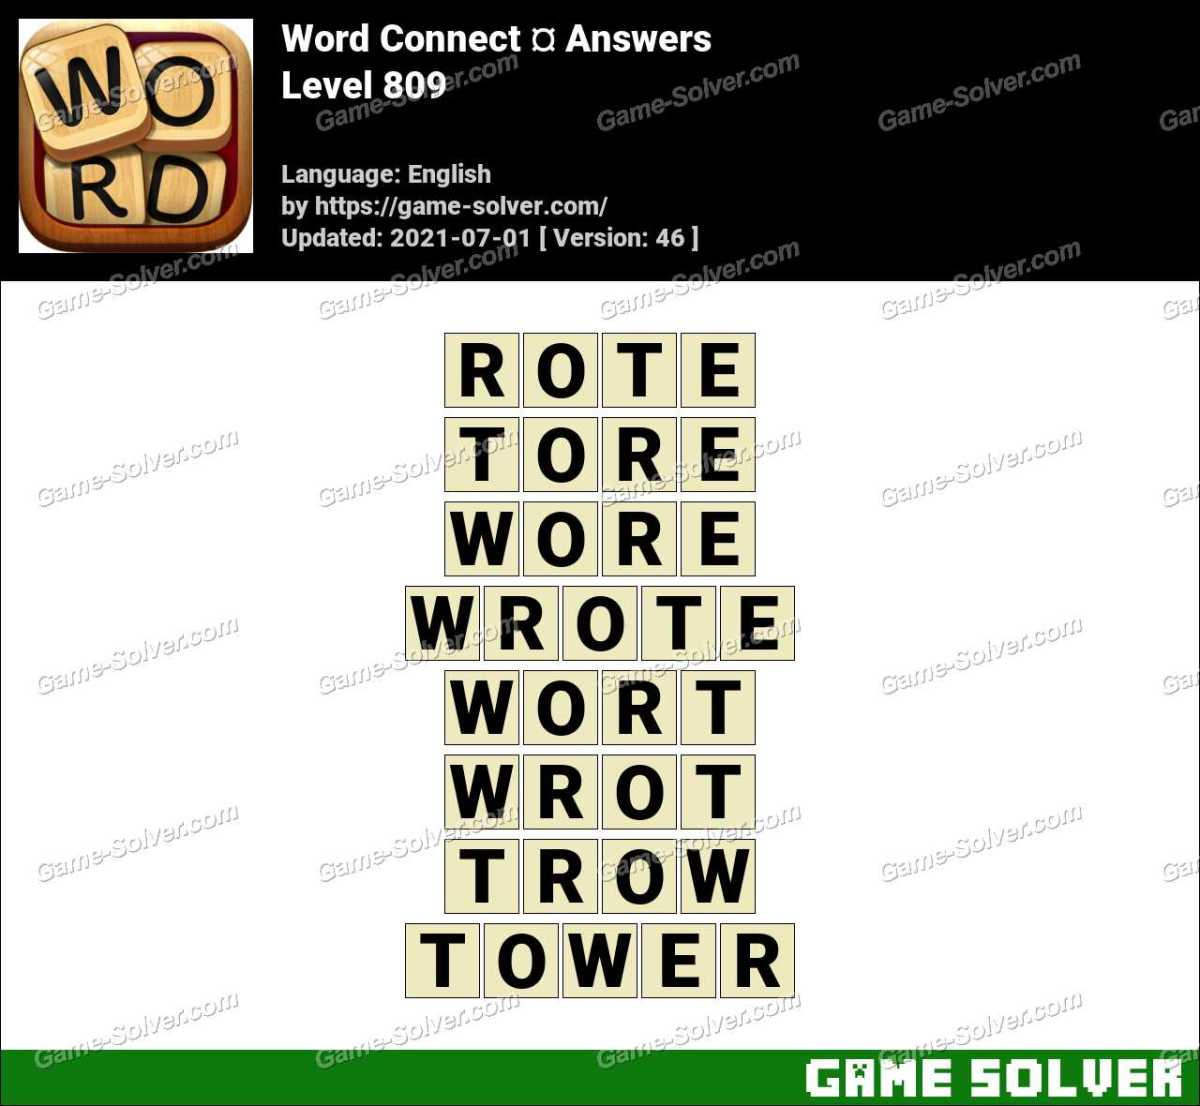 Word Connect Level 809 Answers